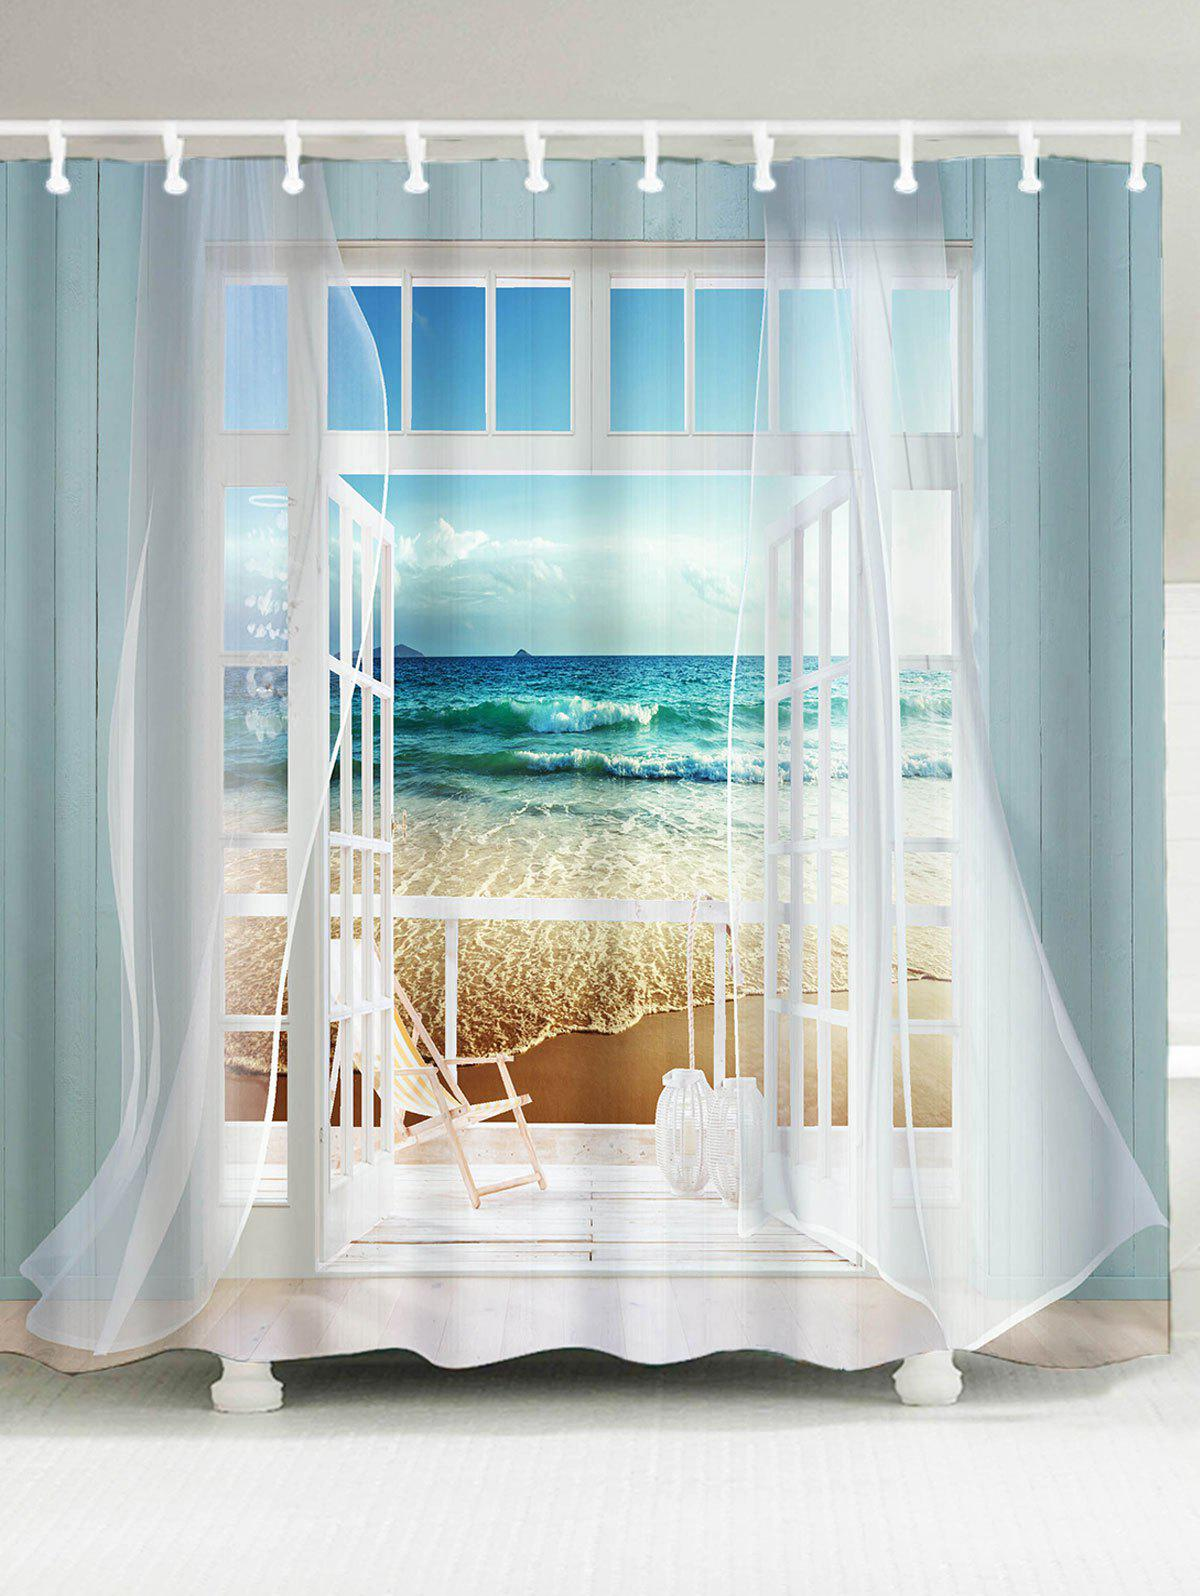 Window Frame Ocean Scene Printing Shower Curtain - COLORMIX W59 INCH * L71 INCH